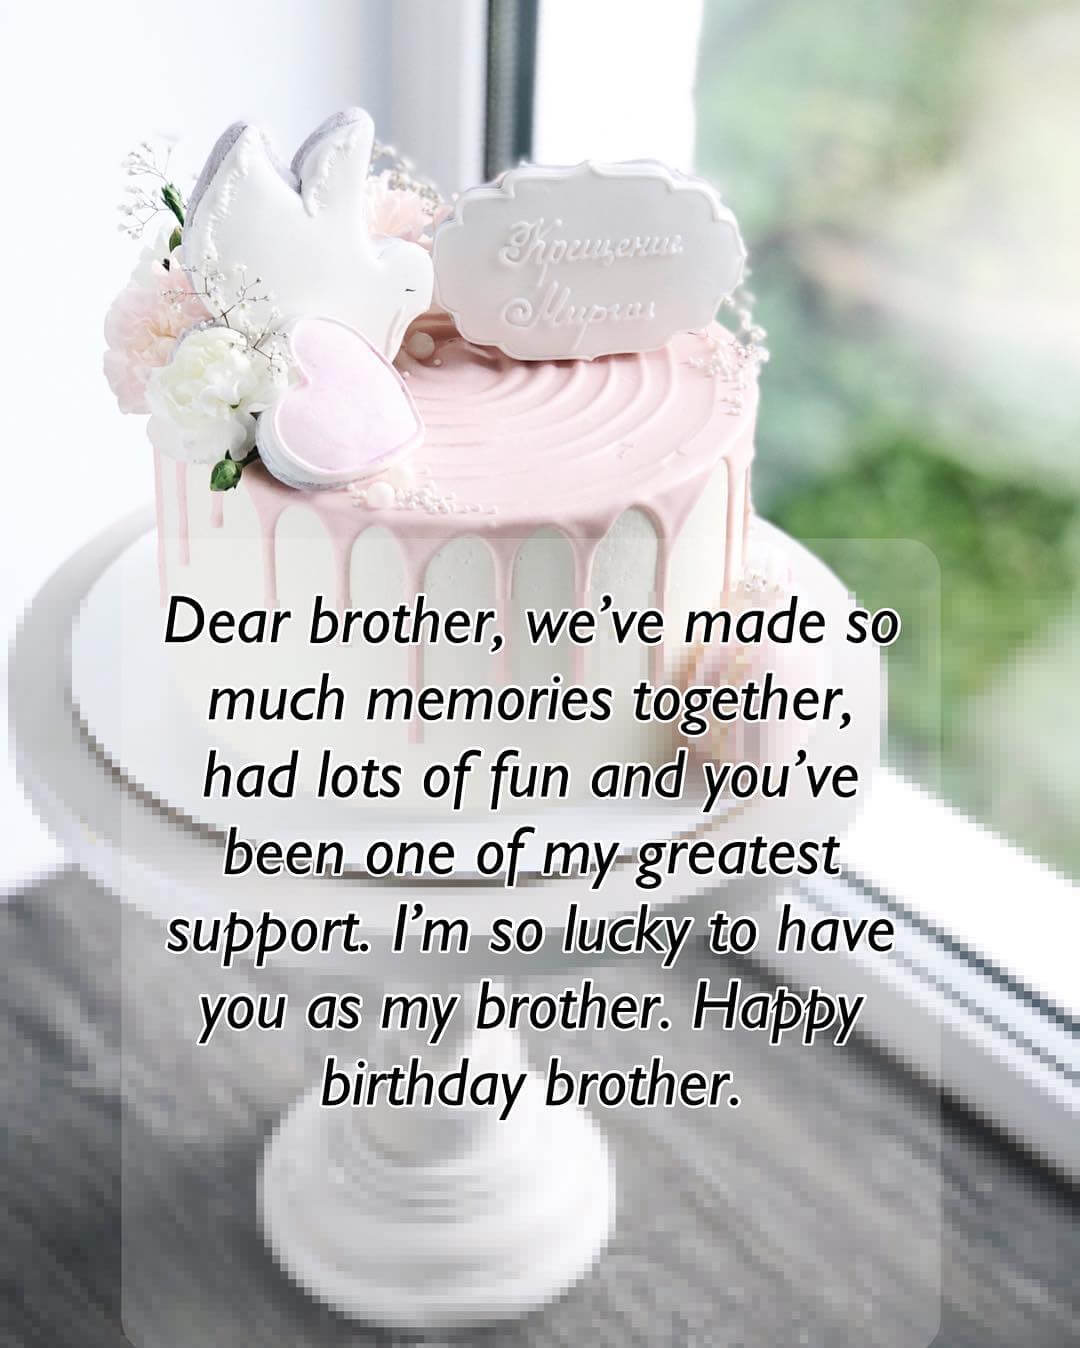 Short And Long Happy Birthday Quotes & Wishes For Brother